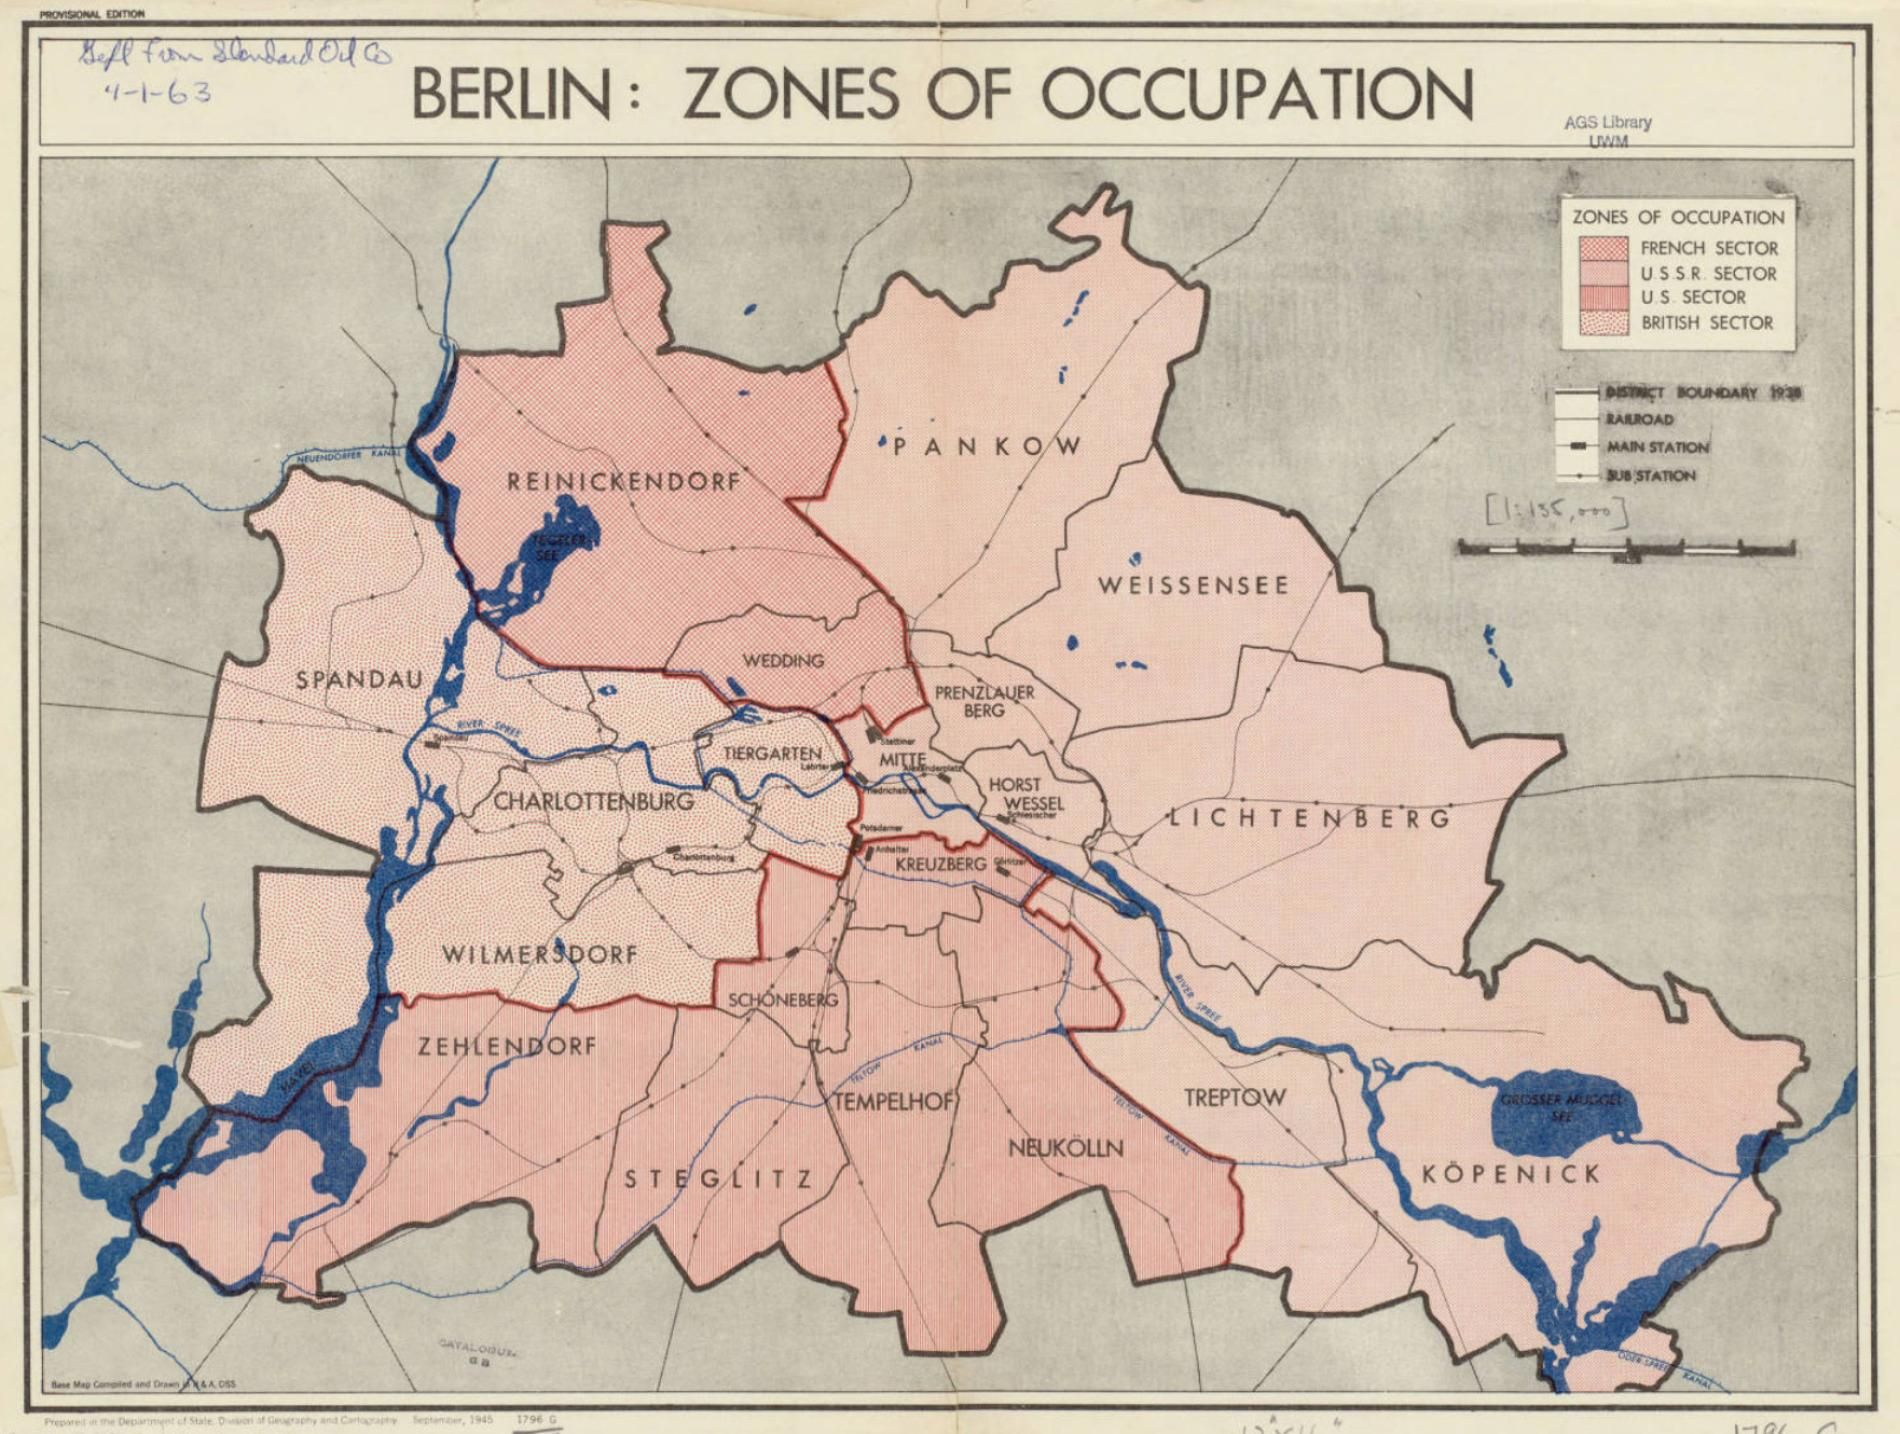 berlin zones of occupation 1945 map berlin germany deutschland